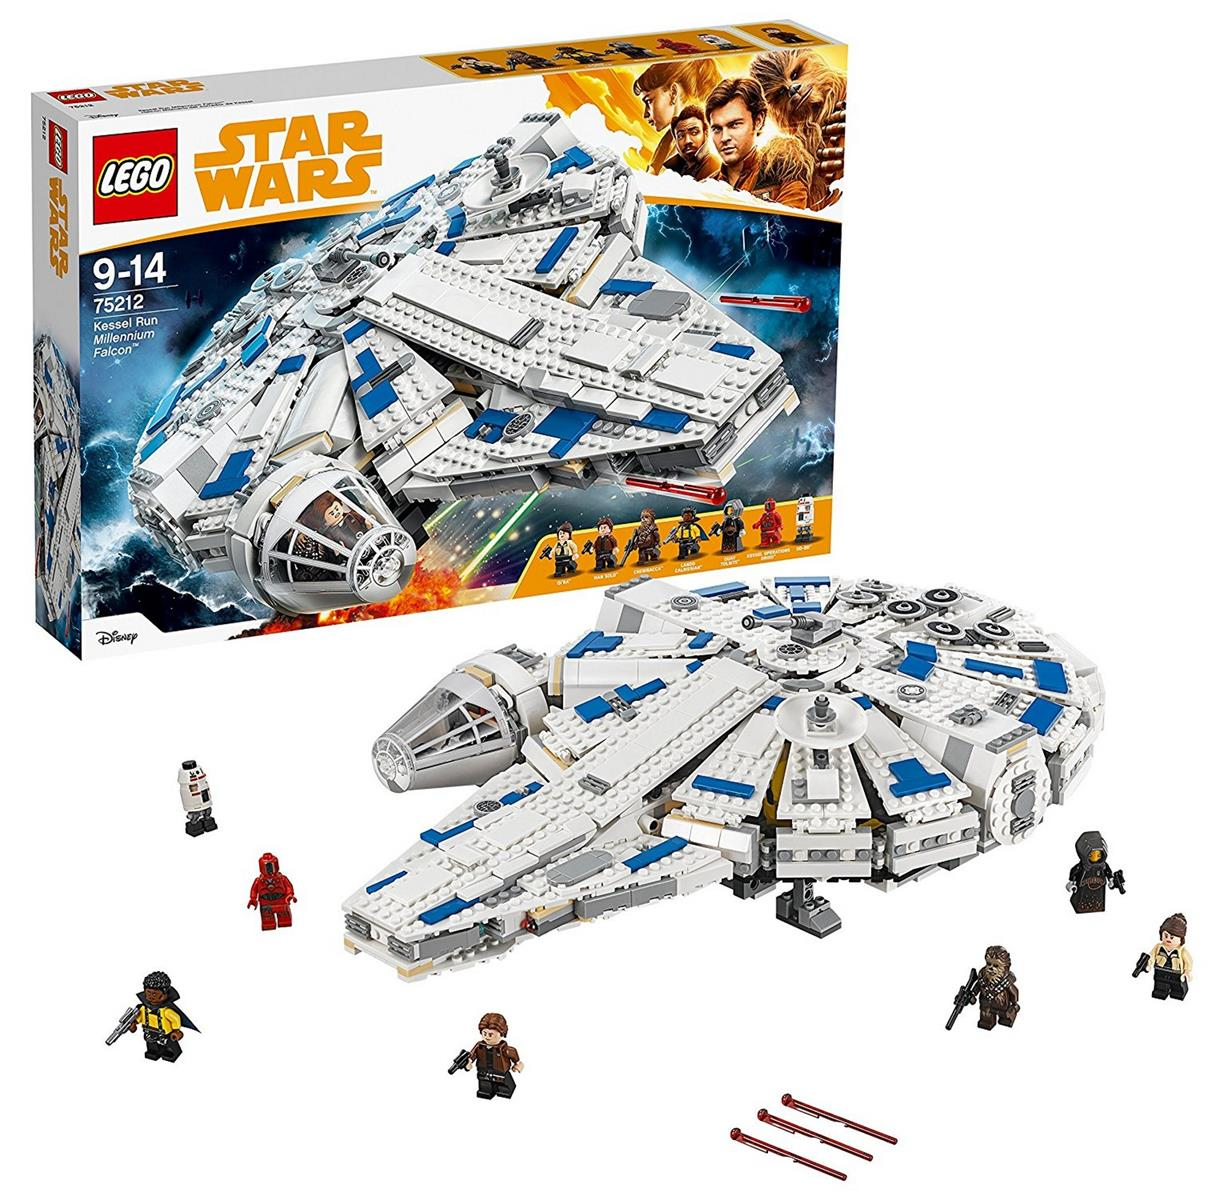 LEGO 75212 - Star Wars - Kessel Run Millennium Falcon | eBay